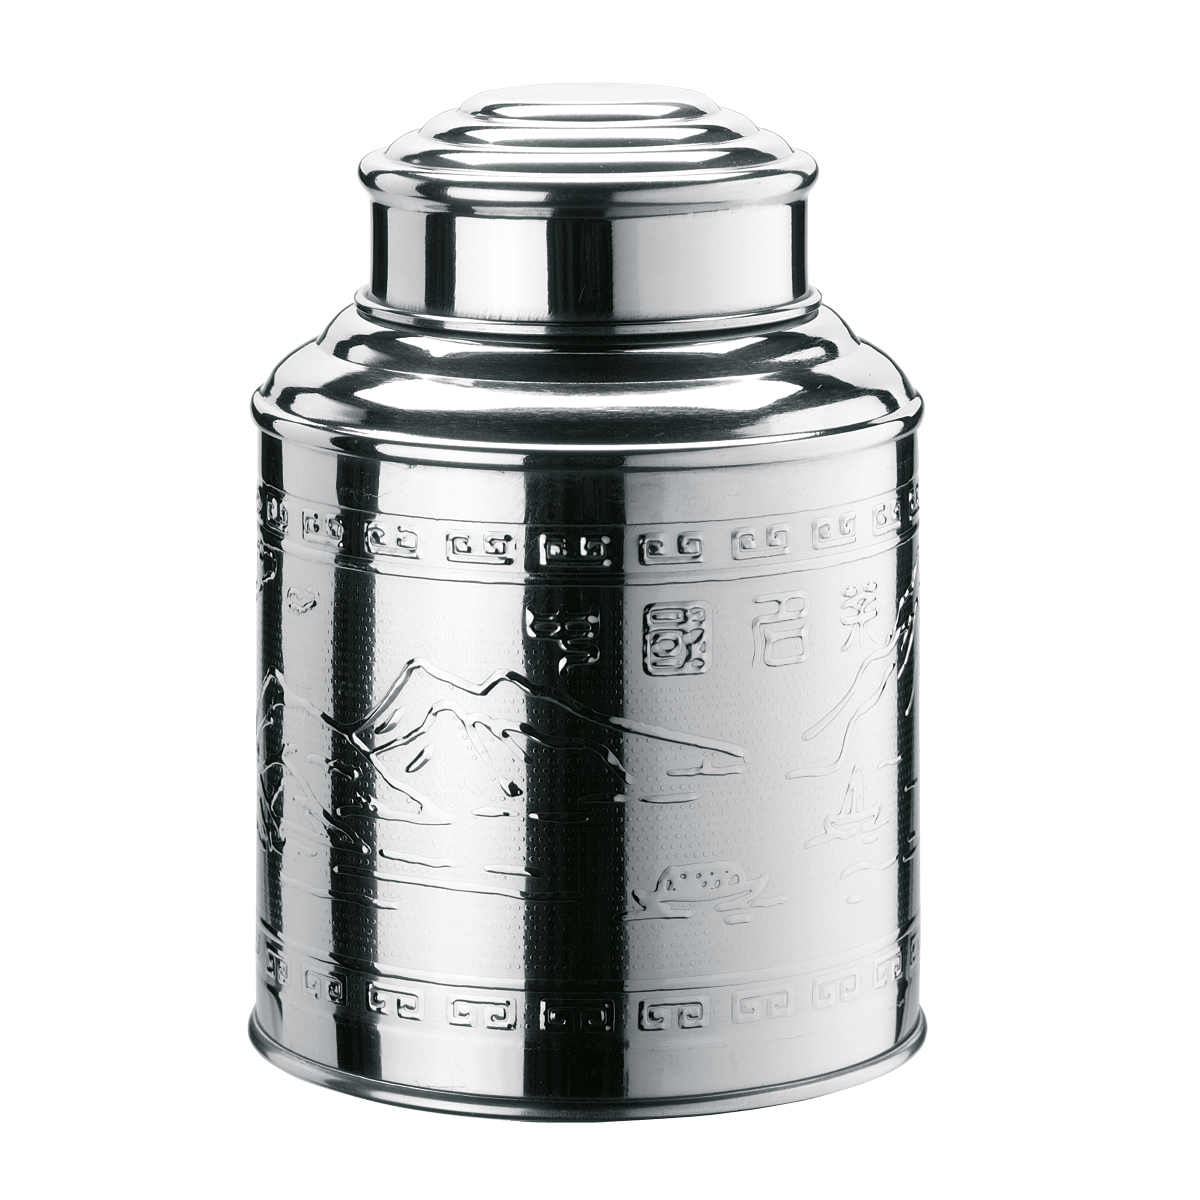 Tea Caddy, 300g